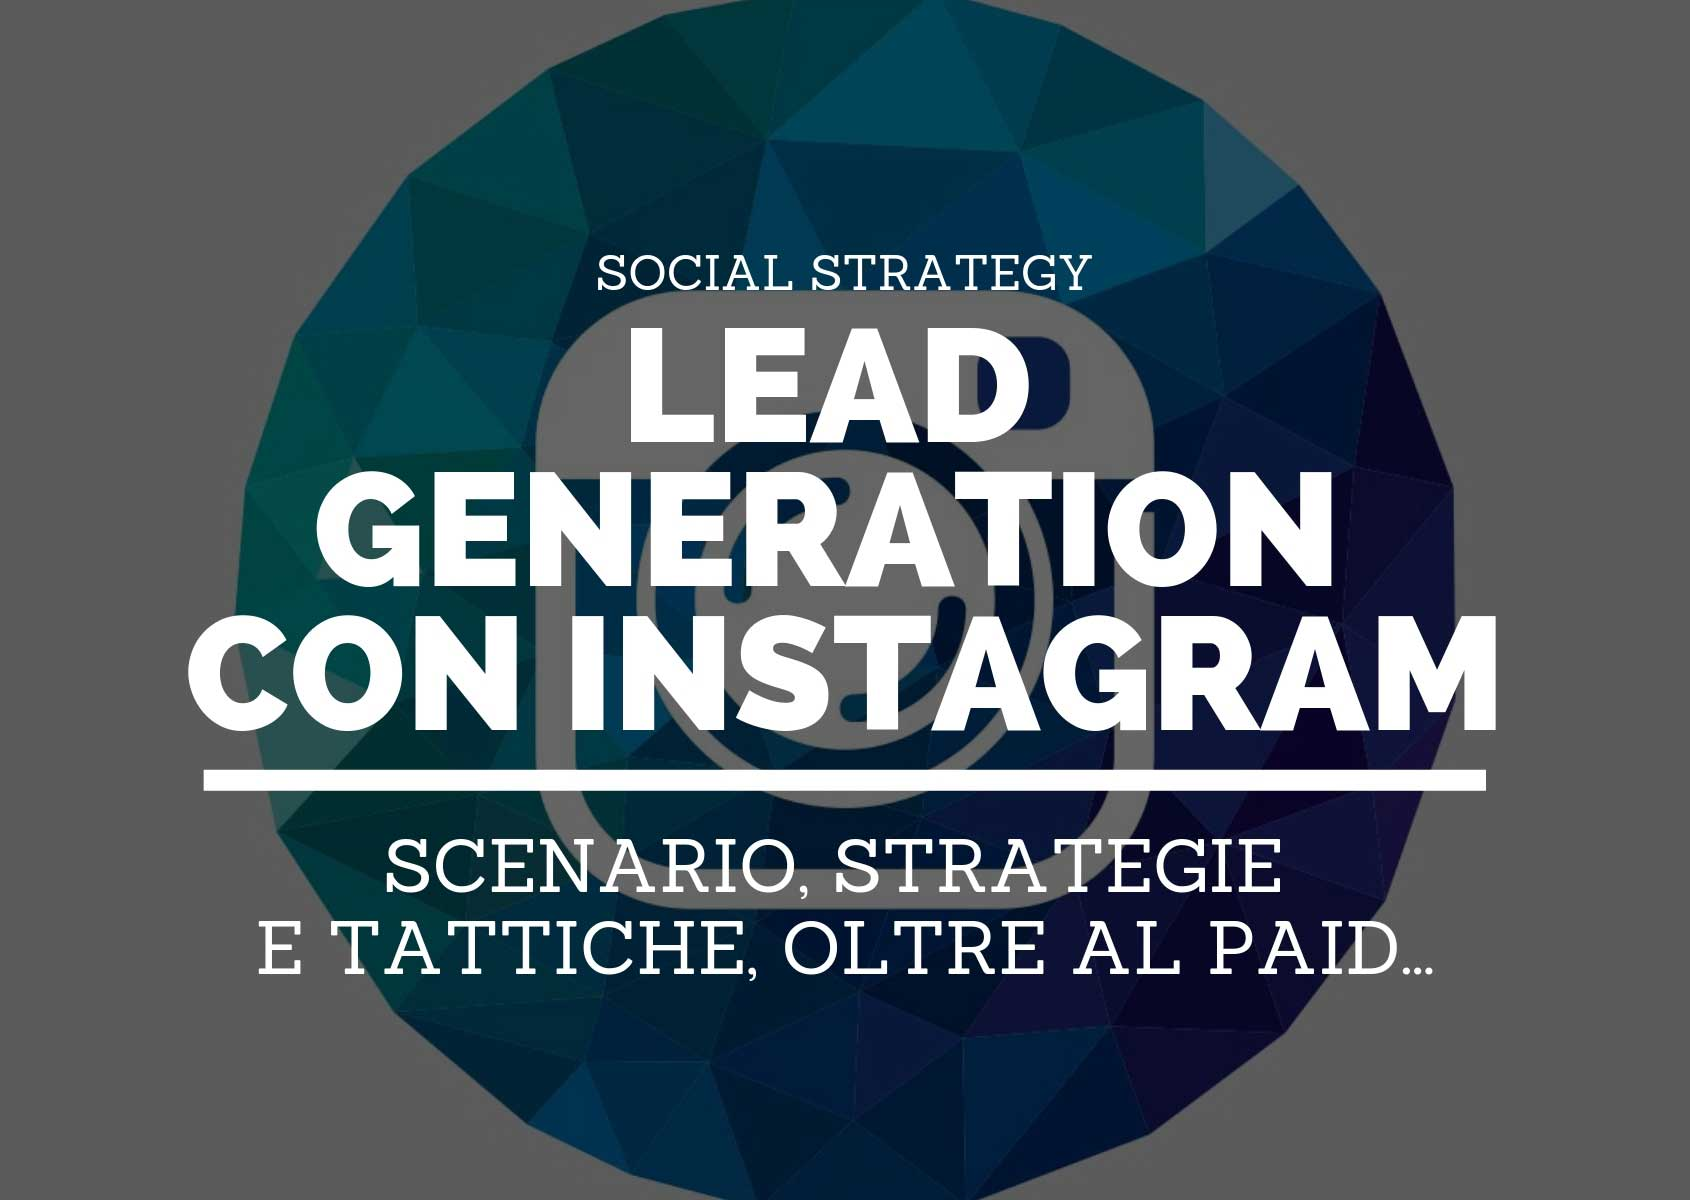 Come fare lead generation con Instagram marketing